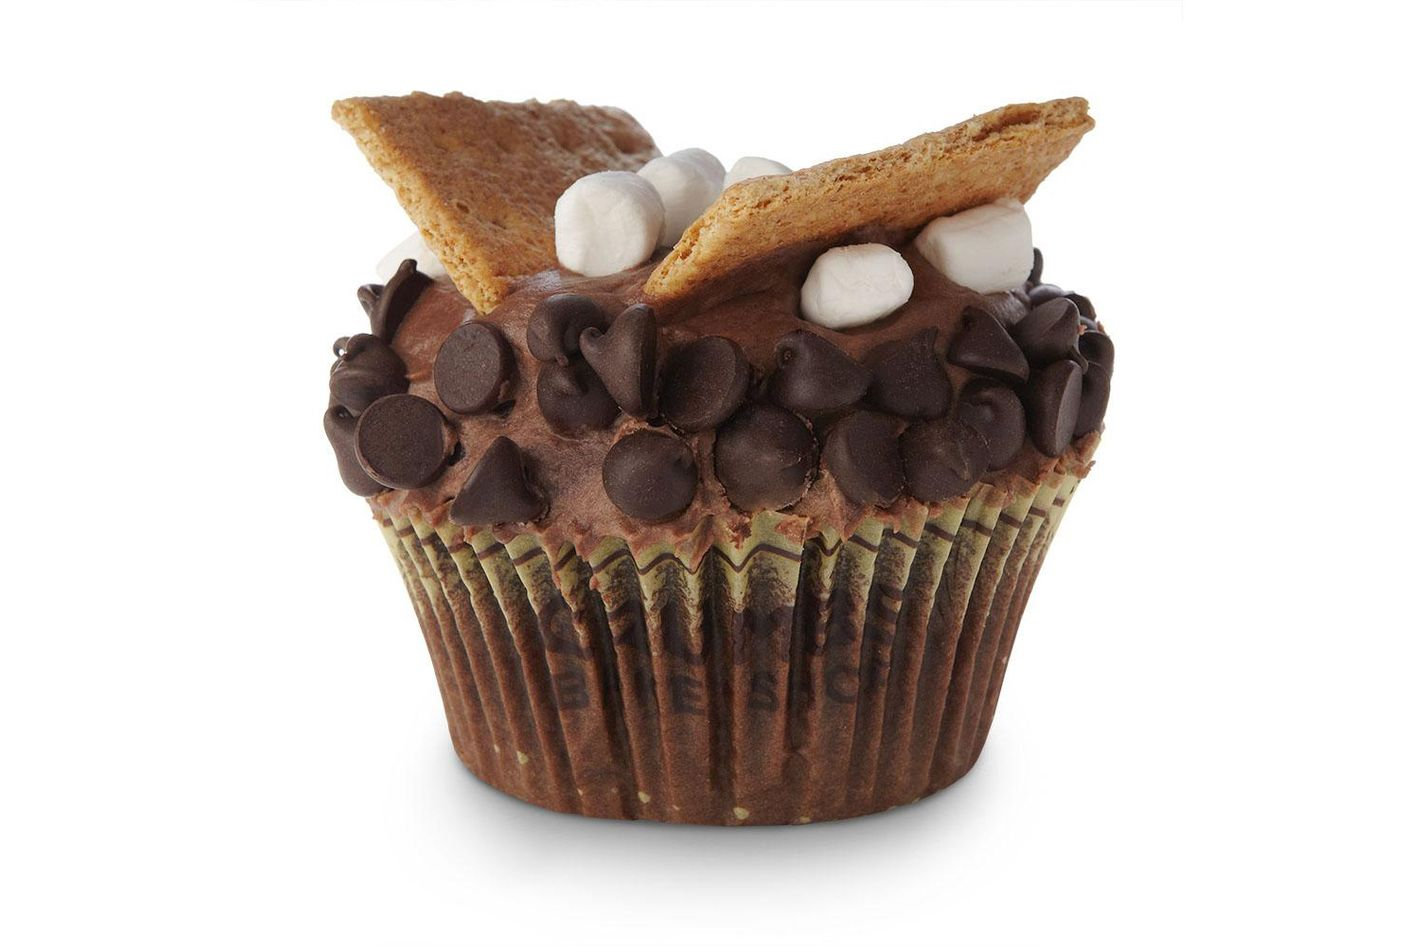 Soar like an eagle, s'mores cupcake!